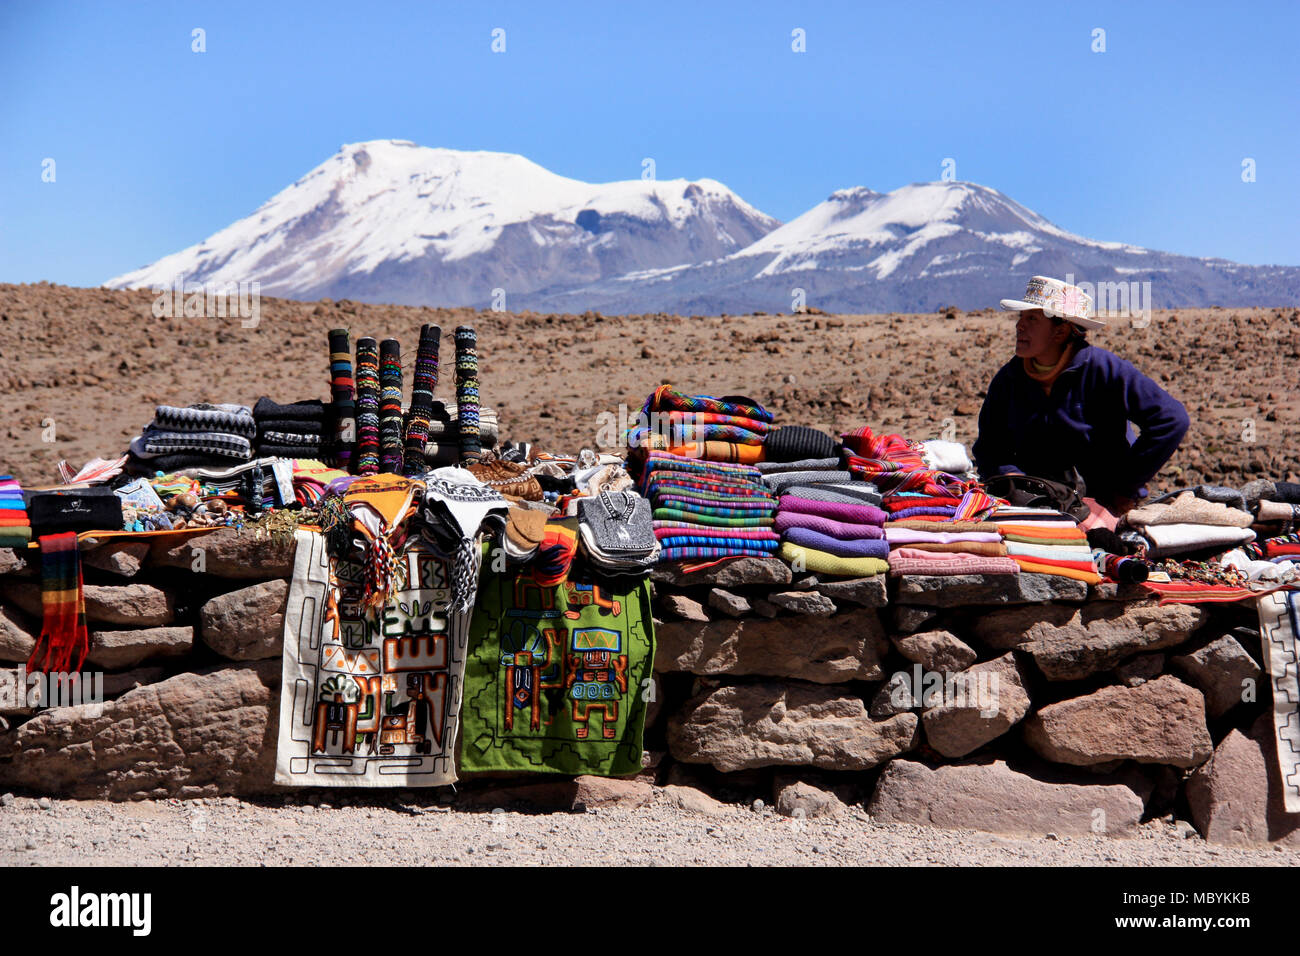 Peruvian Woman selling traditional Textiles on Top of a high Mountain Pass in the Andes - Stock Image